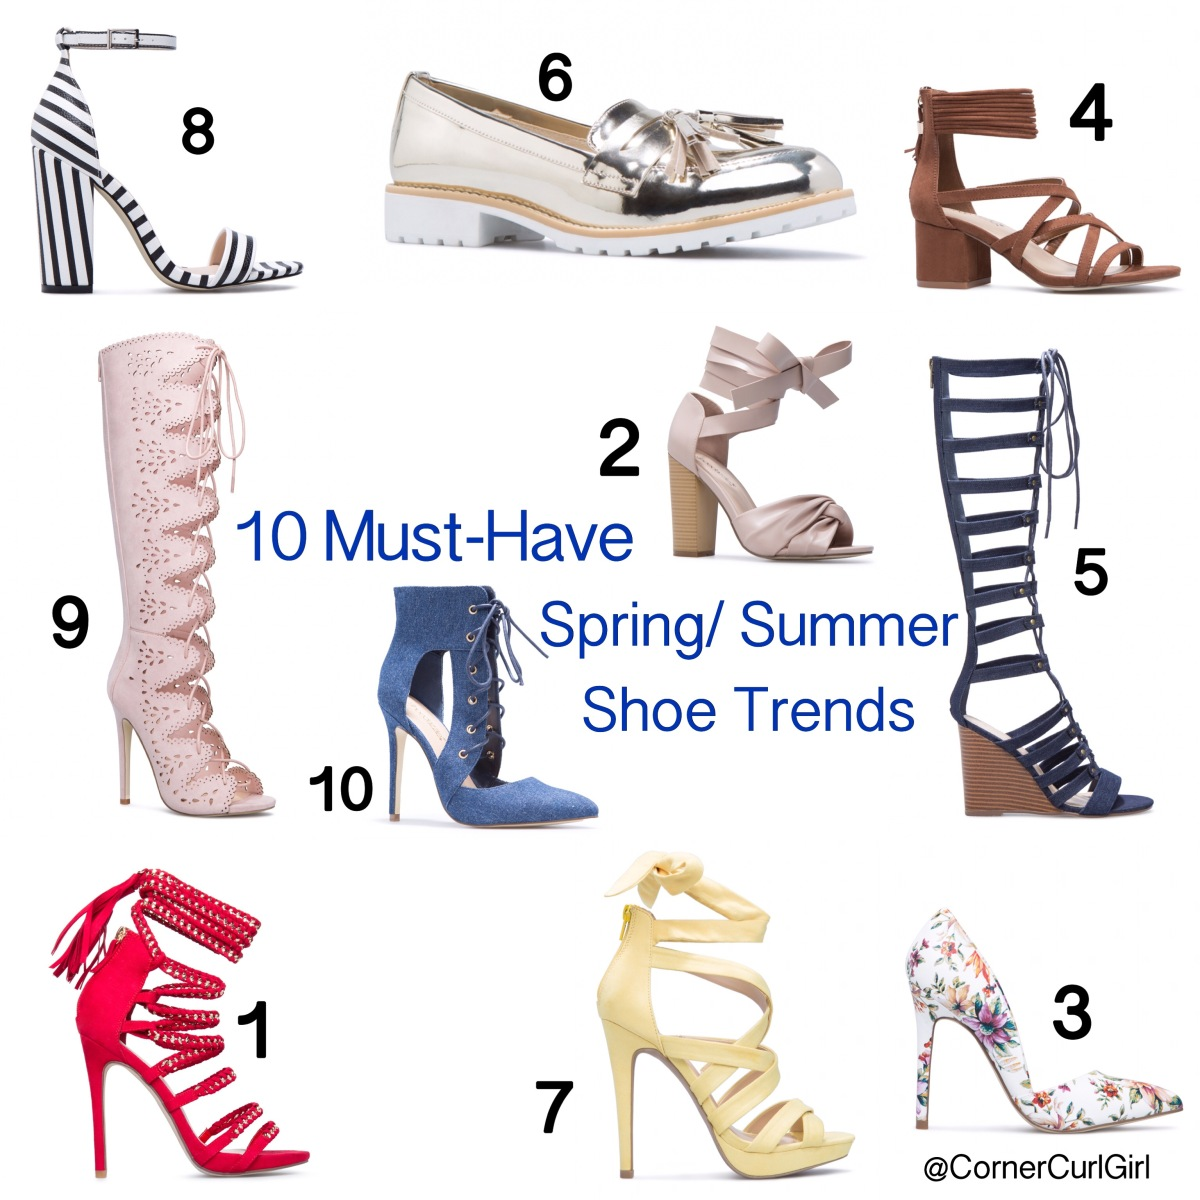 How to Use the Must-Have Shoe of Summer 2017